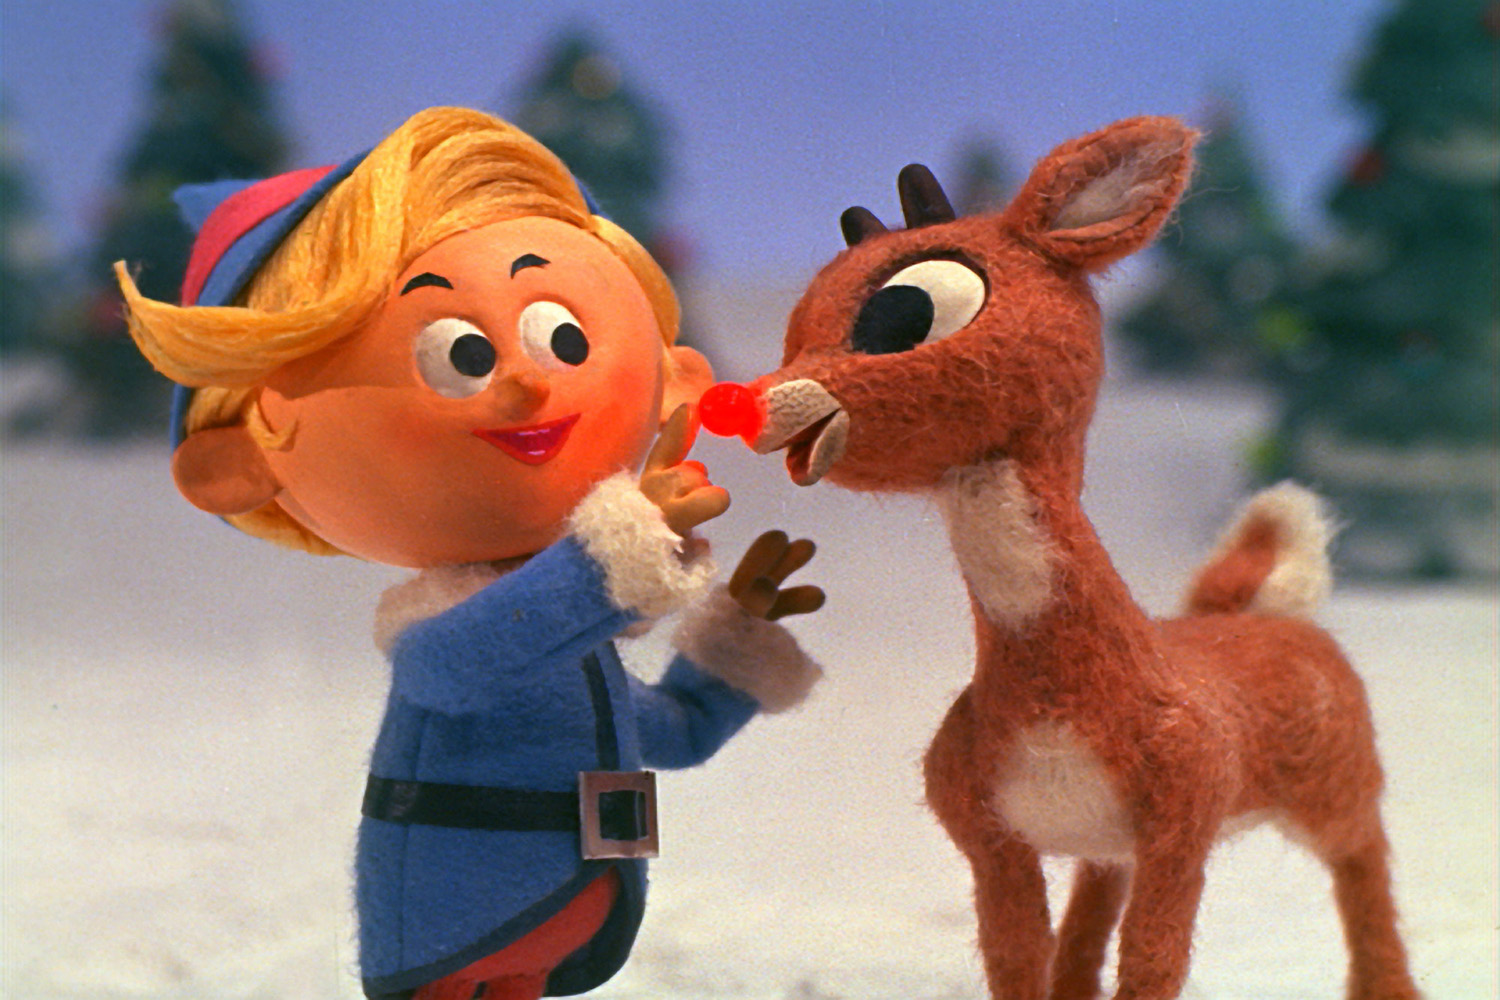 Rudolph With Your Nose So Bright, Won't You Guide Us Through Our Crucibles Tonight?